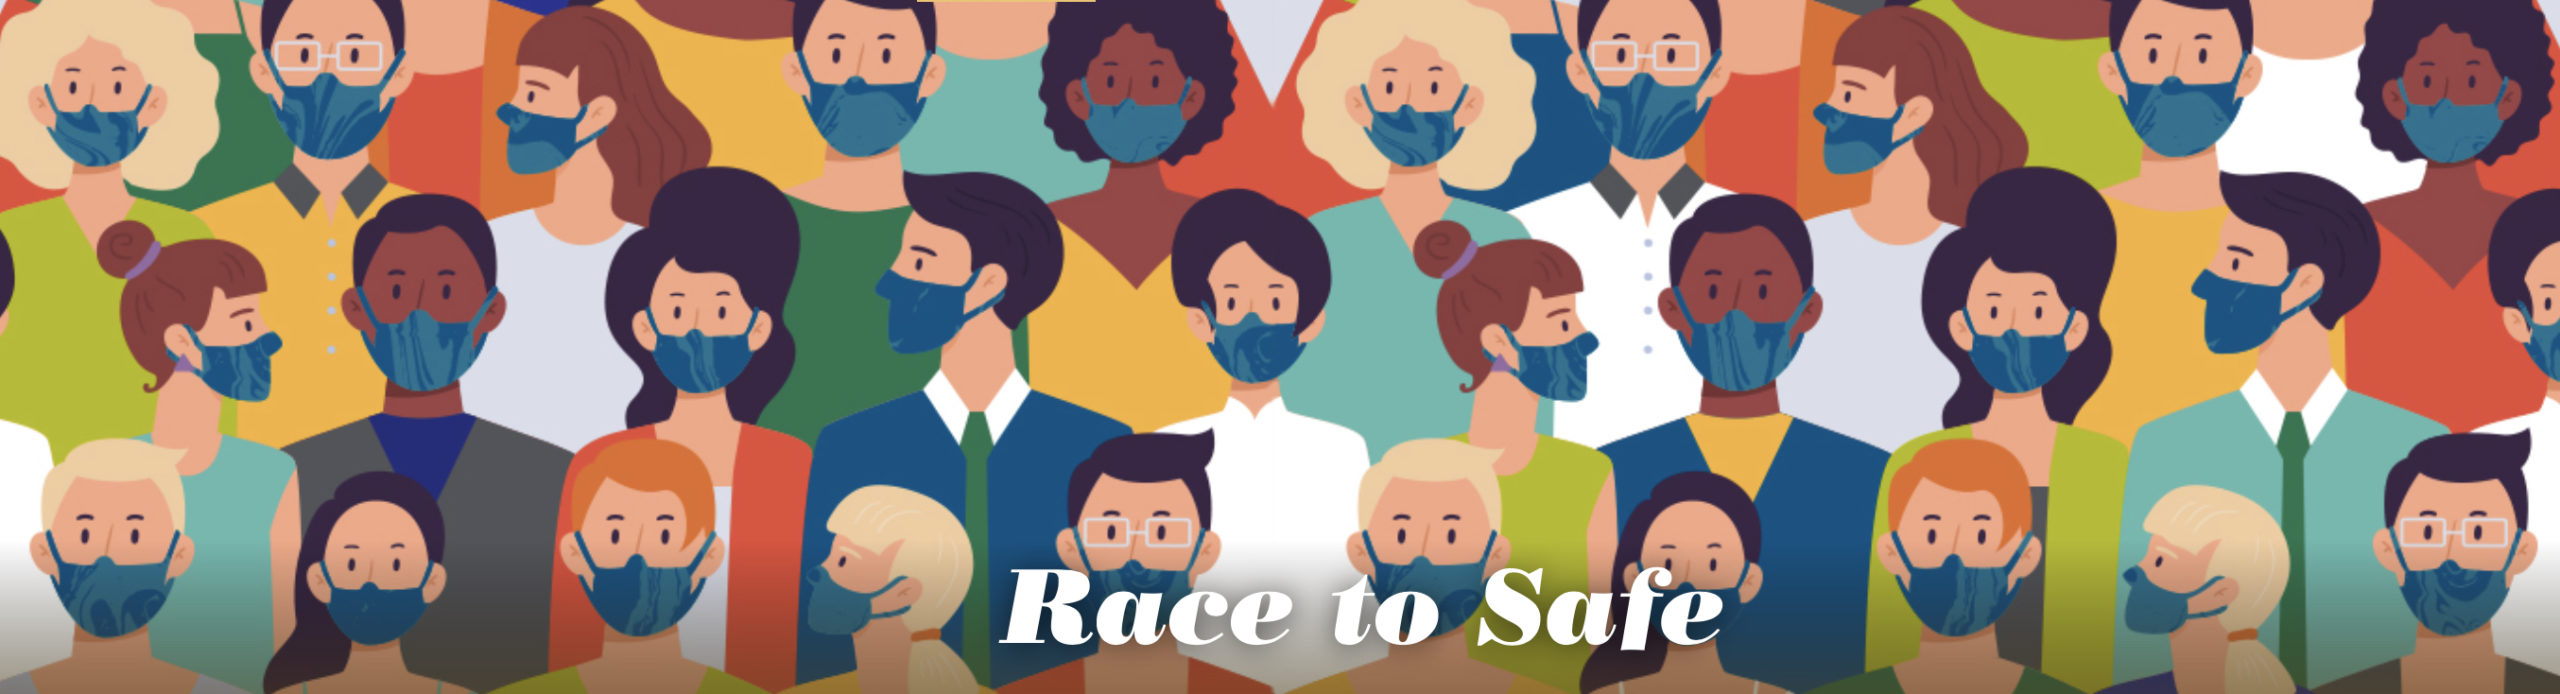 """A graphic of cartoon people wearing face masks with """"Race to Safe"""" lettering"""